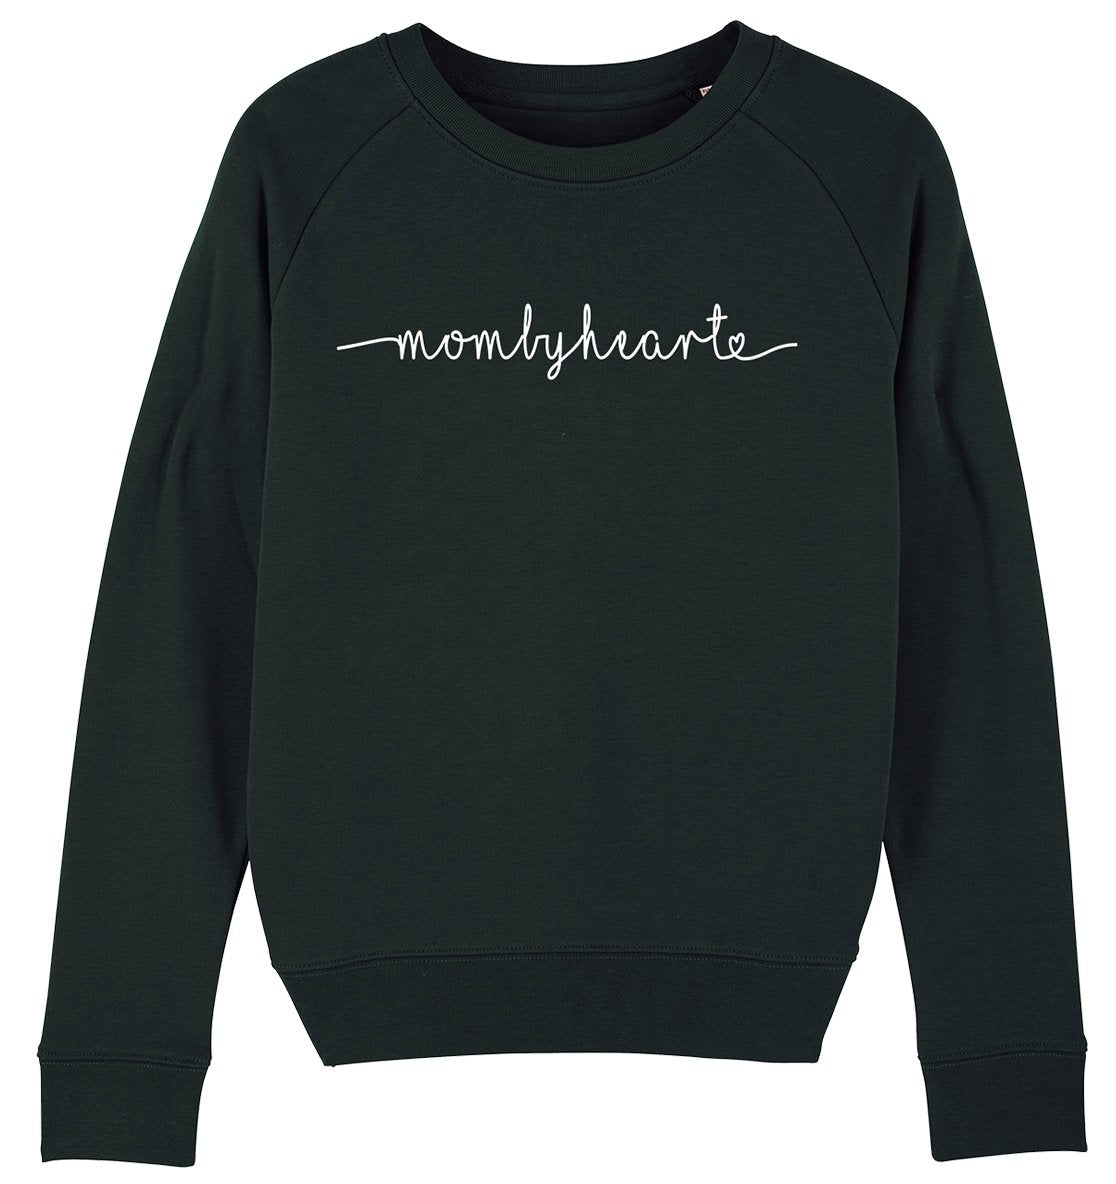 MOM BY HEART HANDWRITTEN - Sweatshirt aus Bio-Baumwolle-Sweatshirts-FAMILY BY HEART